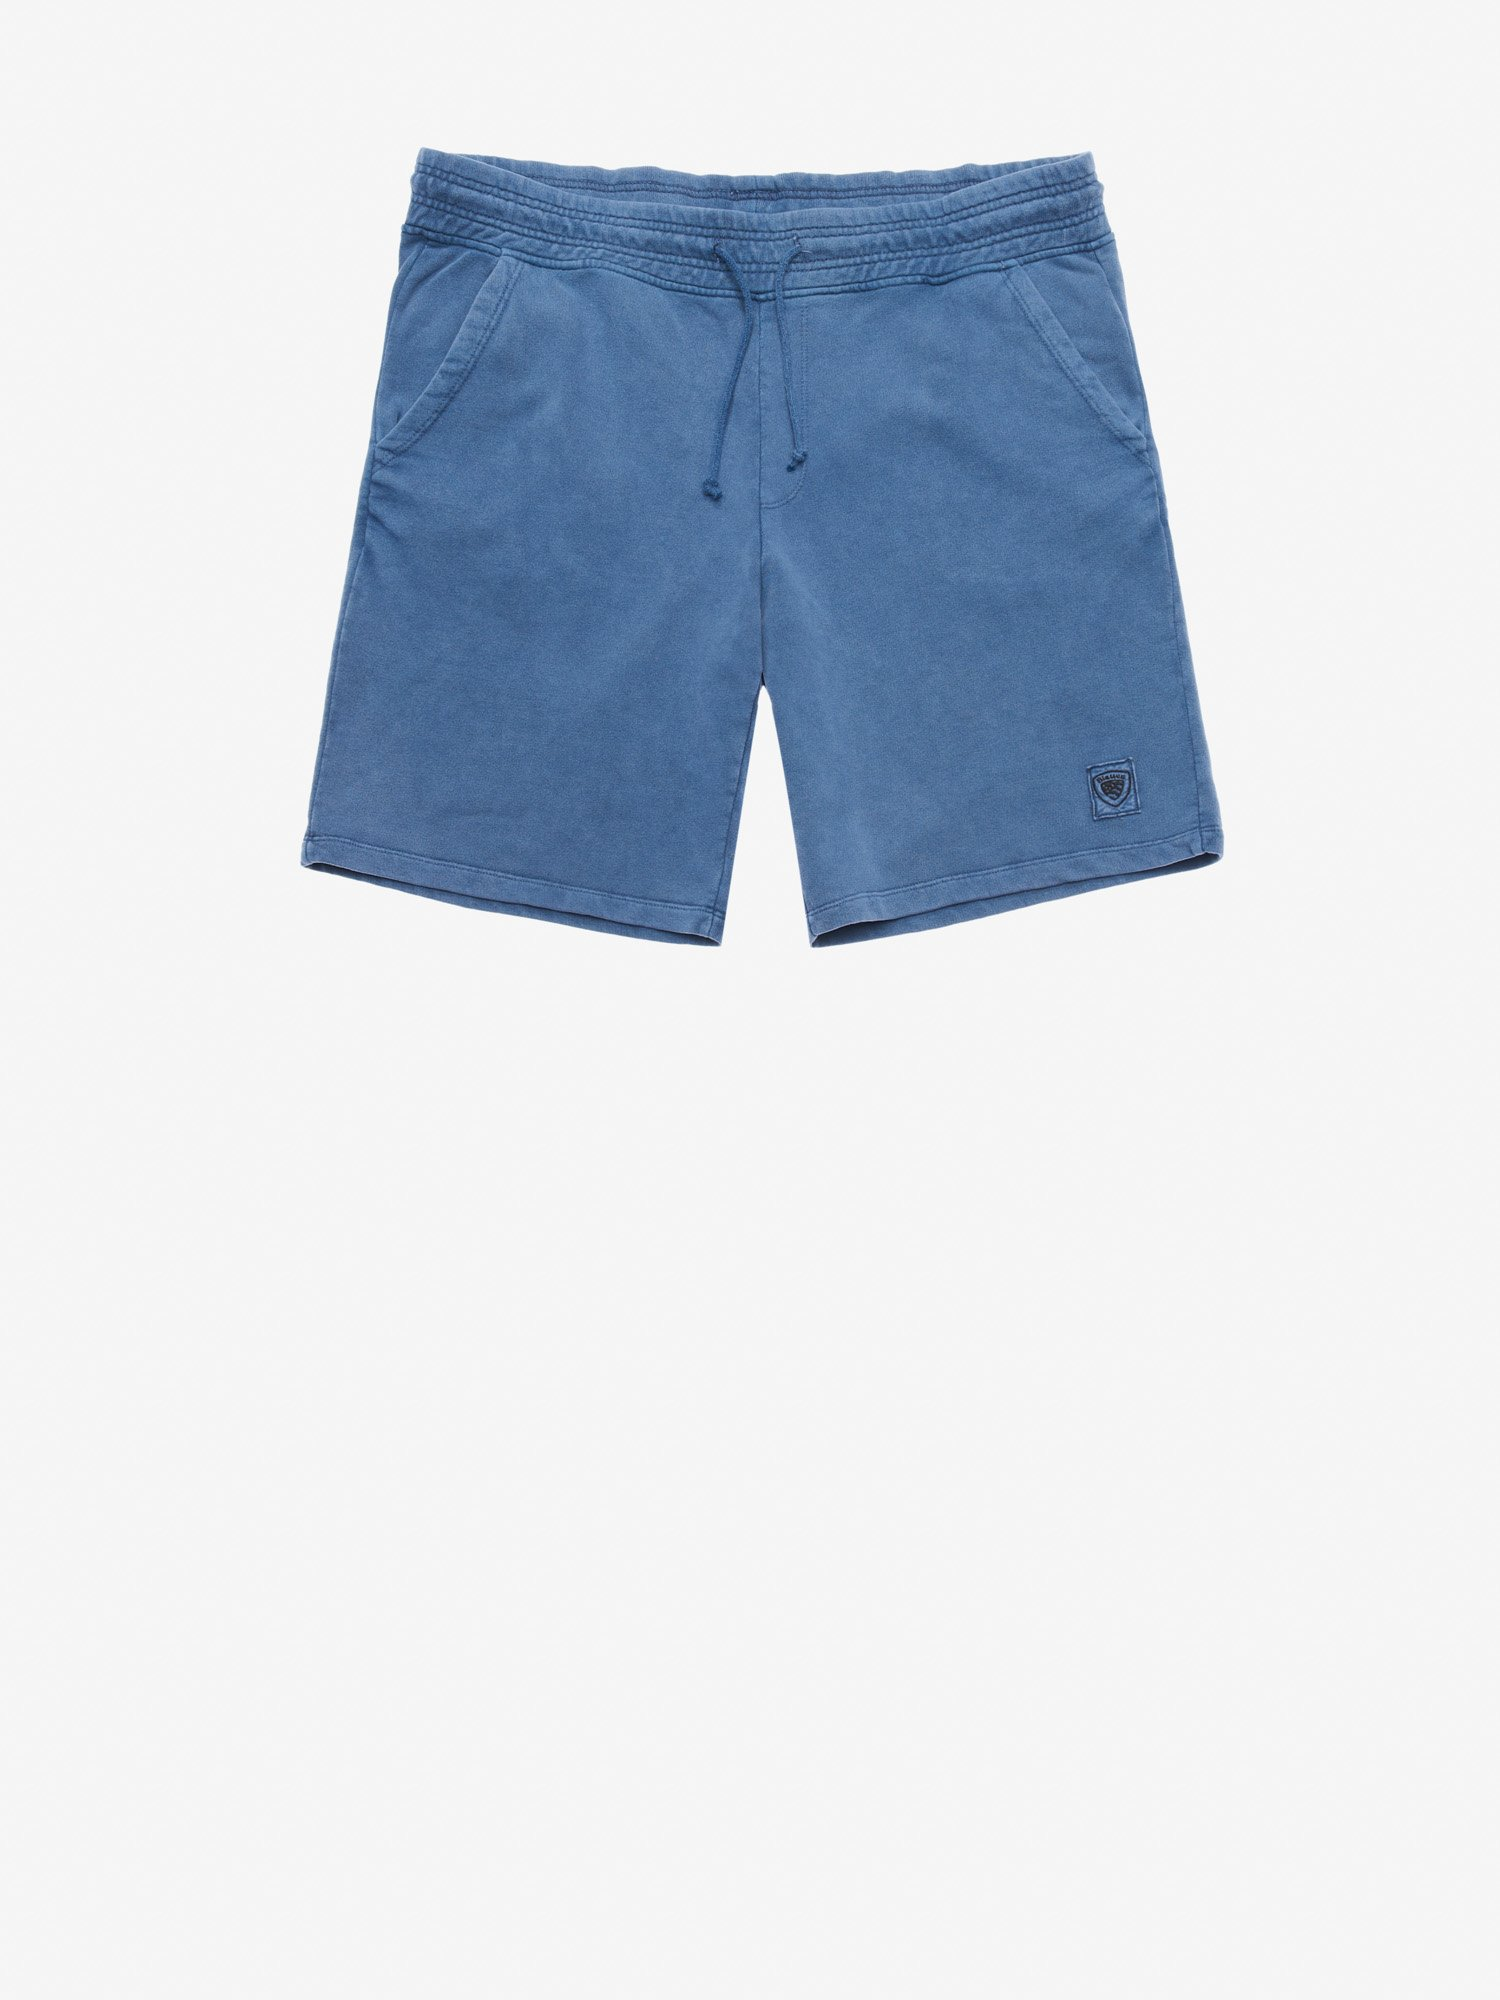 REFLECTIVE SHORTS - Blauer